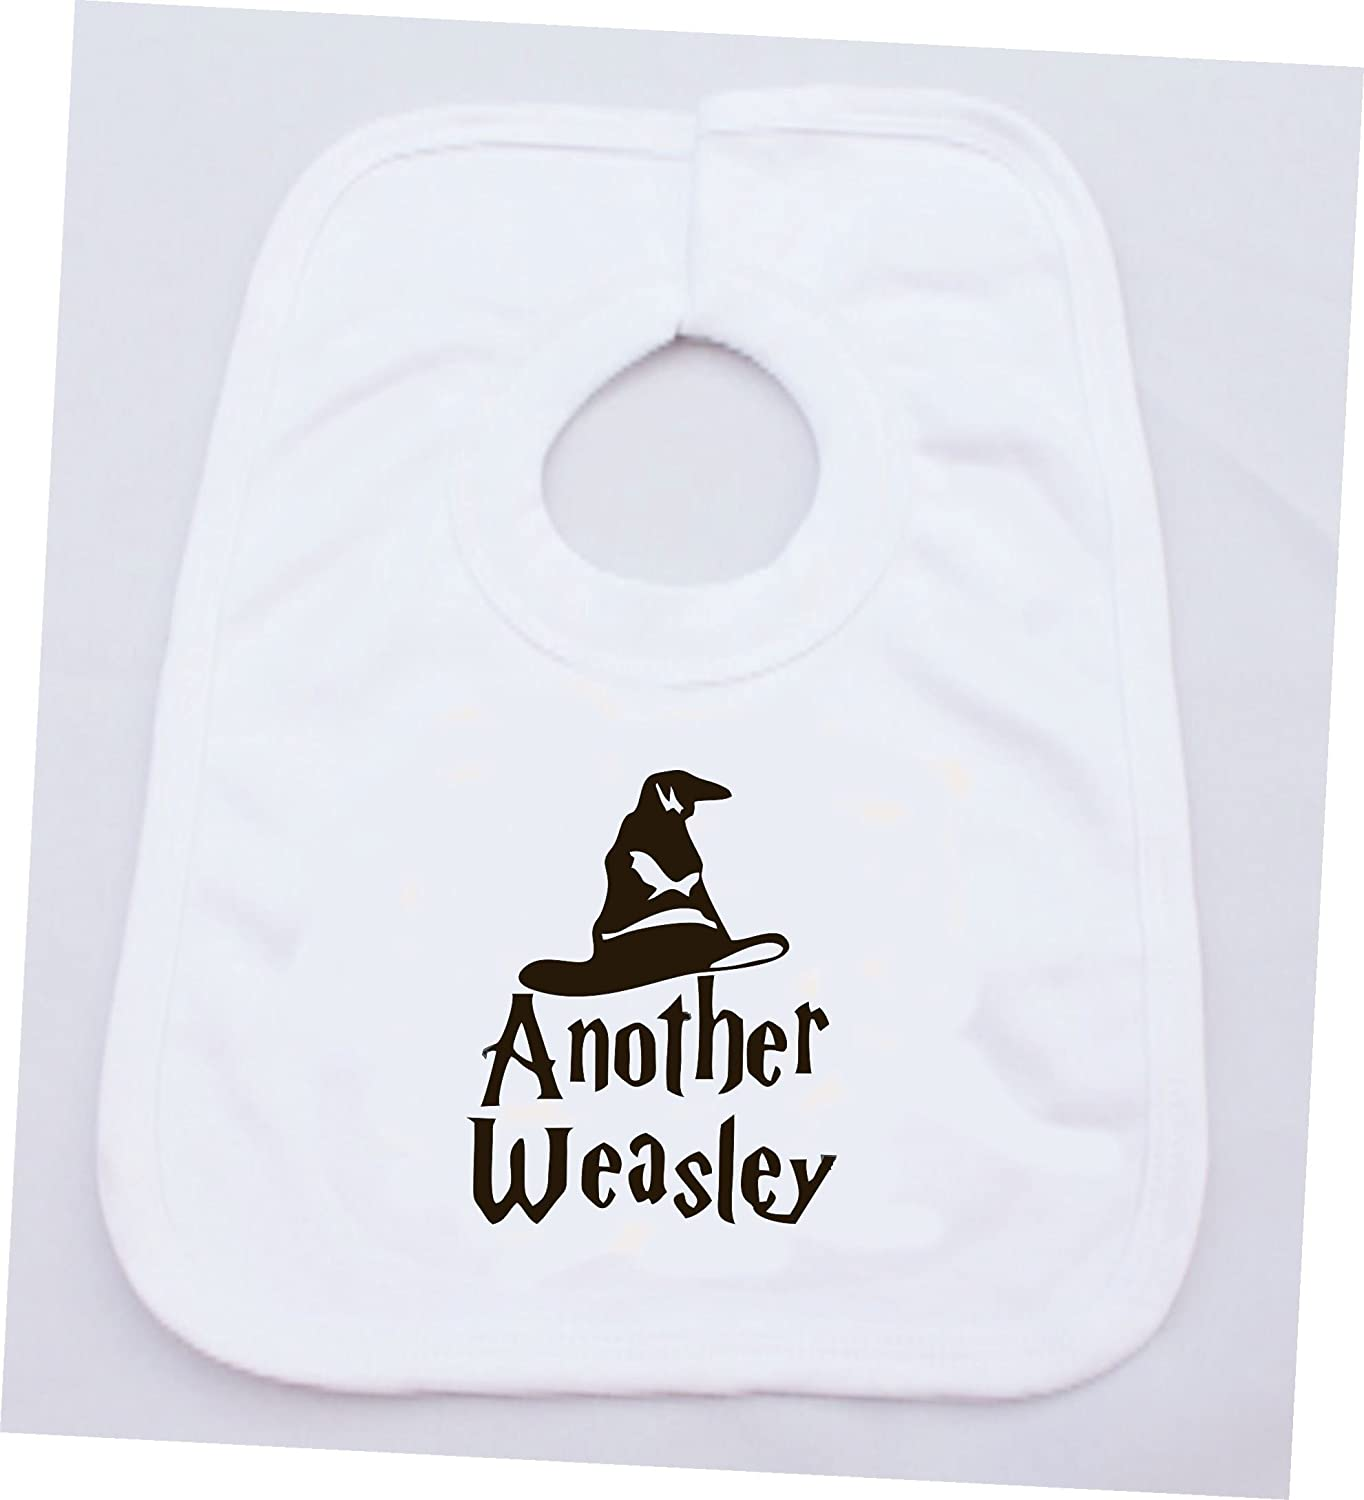 Another Weasley Harry Potter Funny Humour Cotton White Baby Vest OR BIB